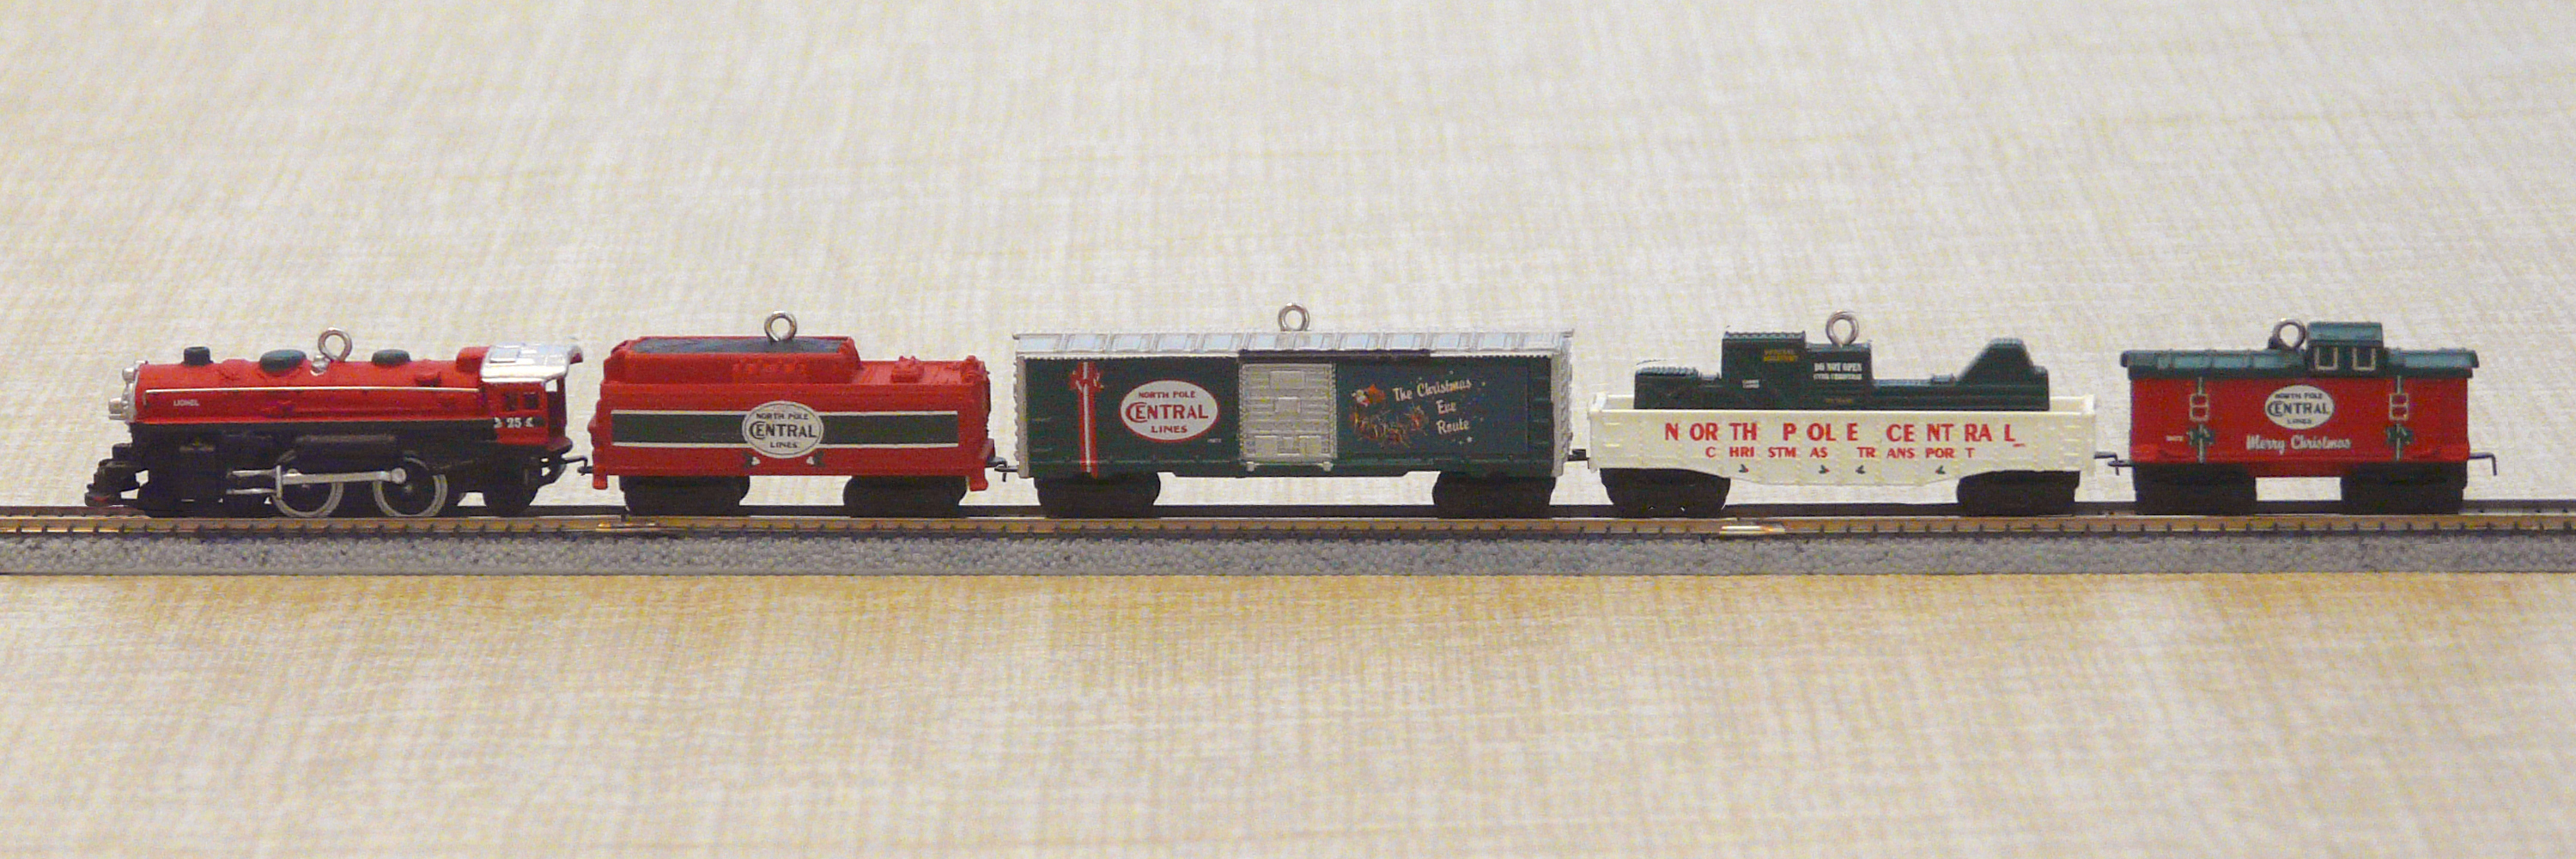 Please Share a Railroad Tree Ornament - Model Railroader Magazine ...